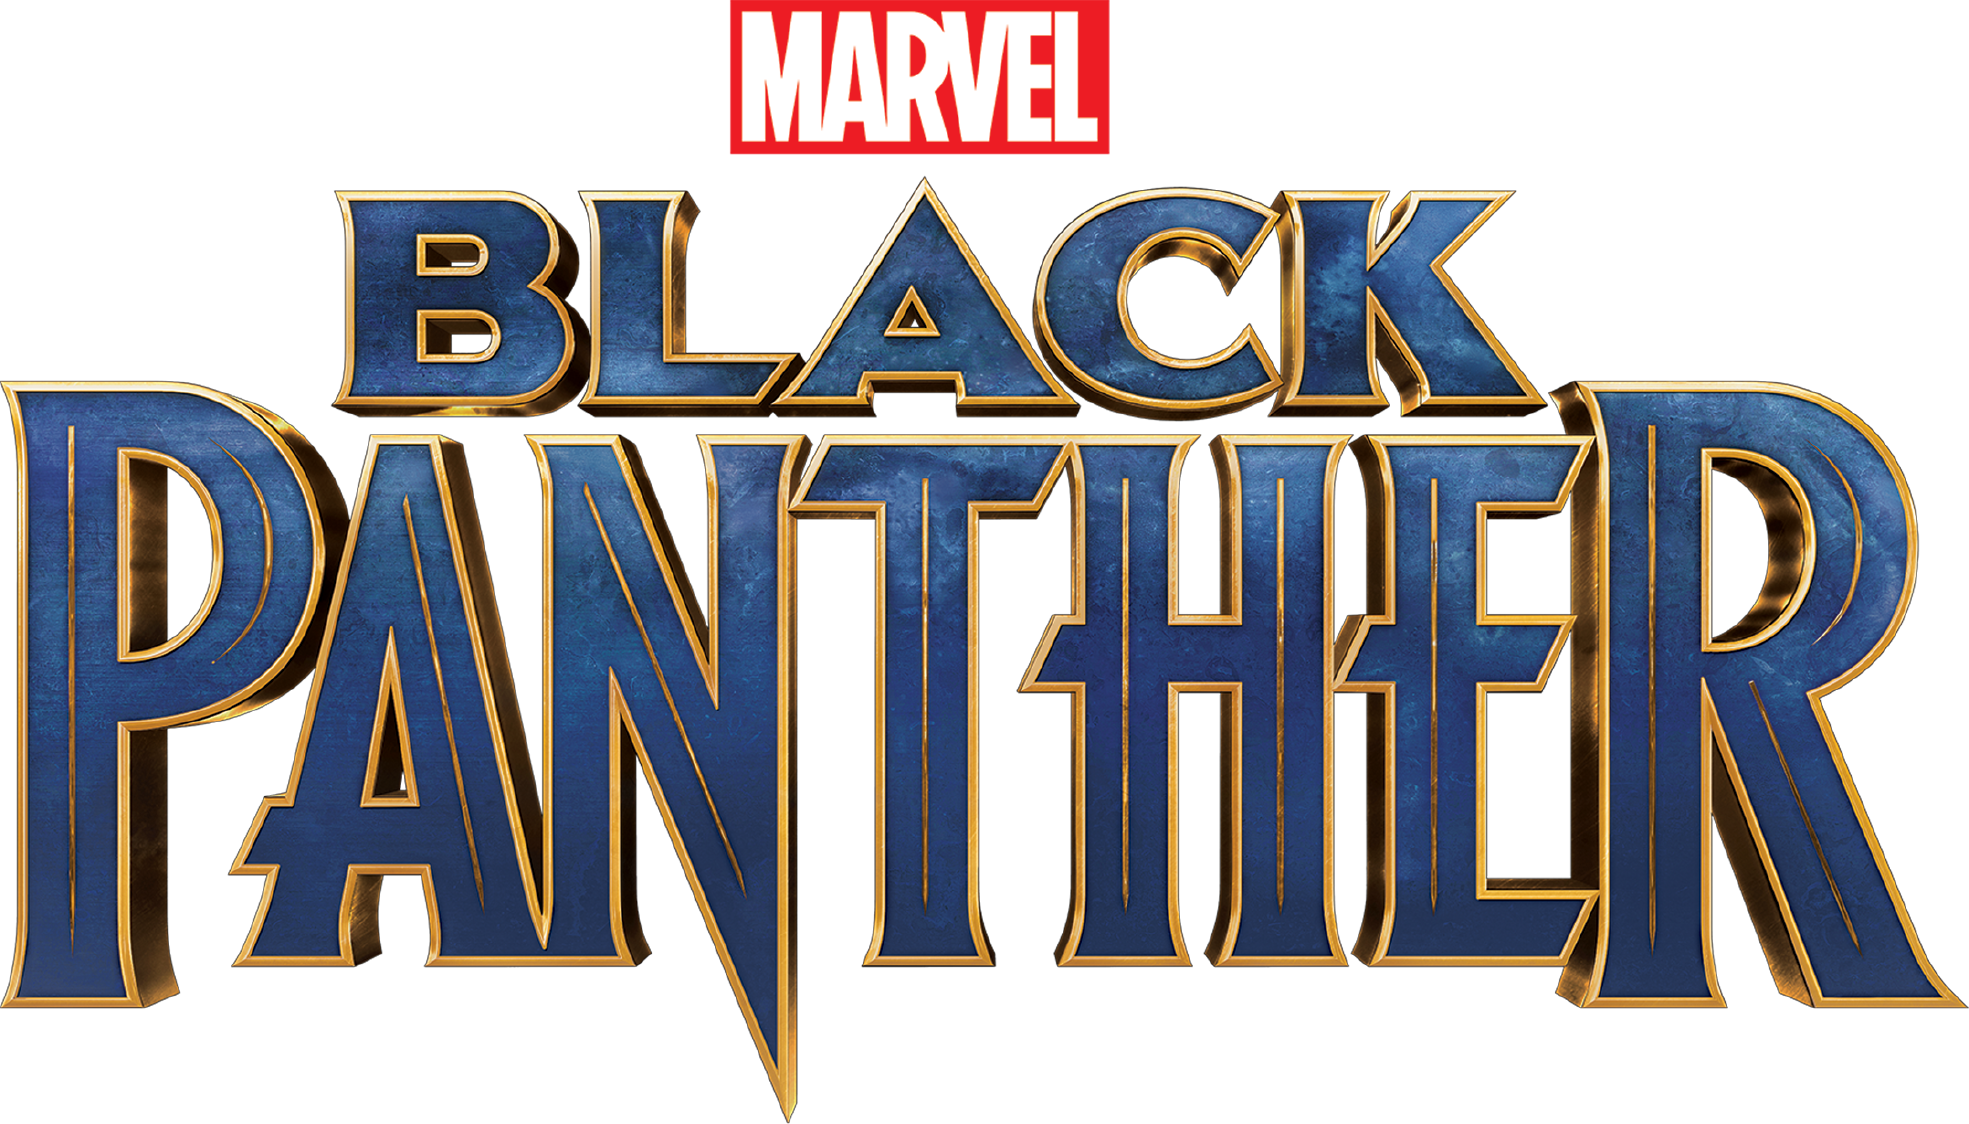 Black panther characters png.